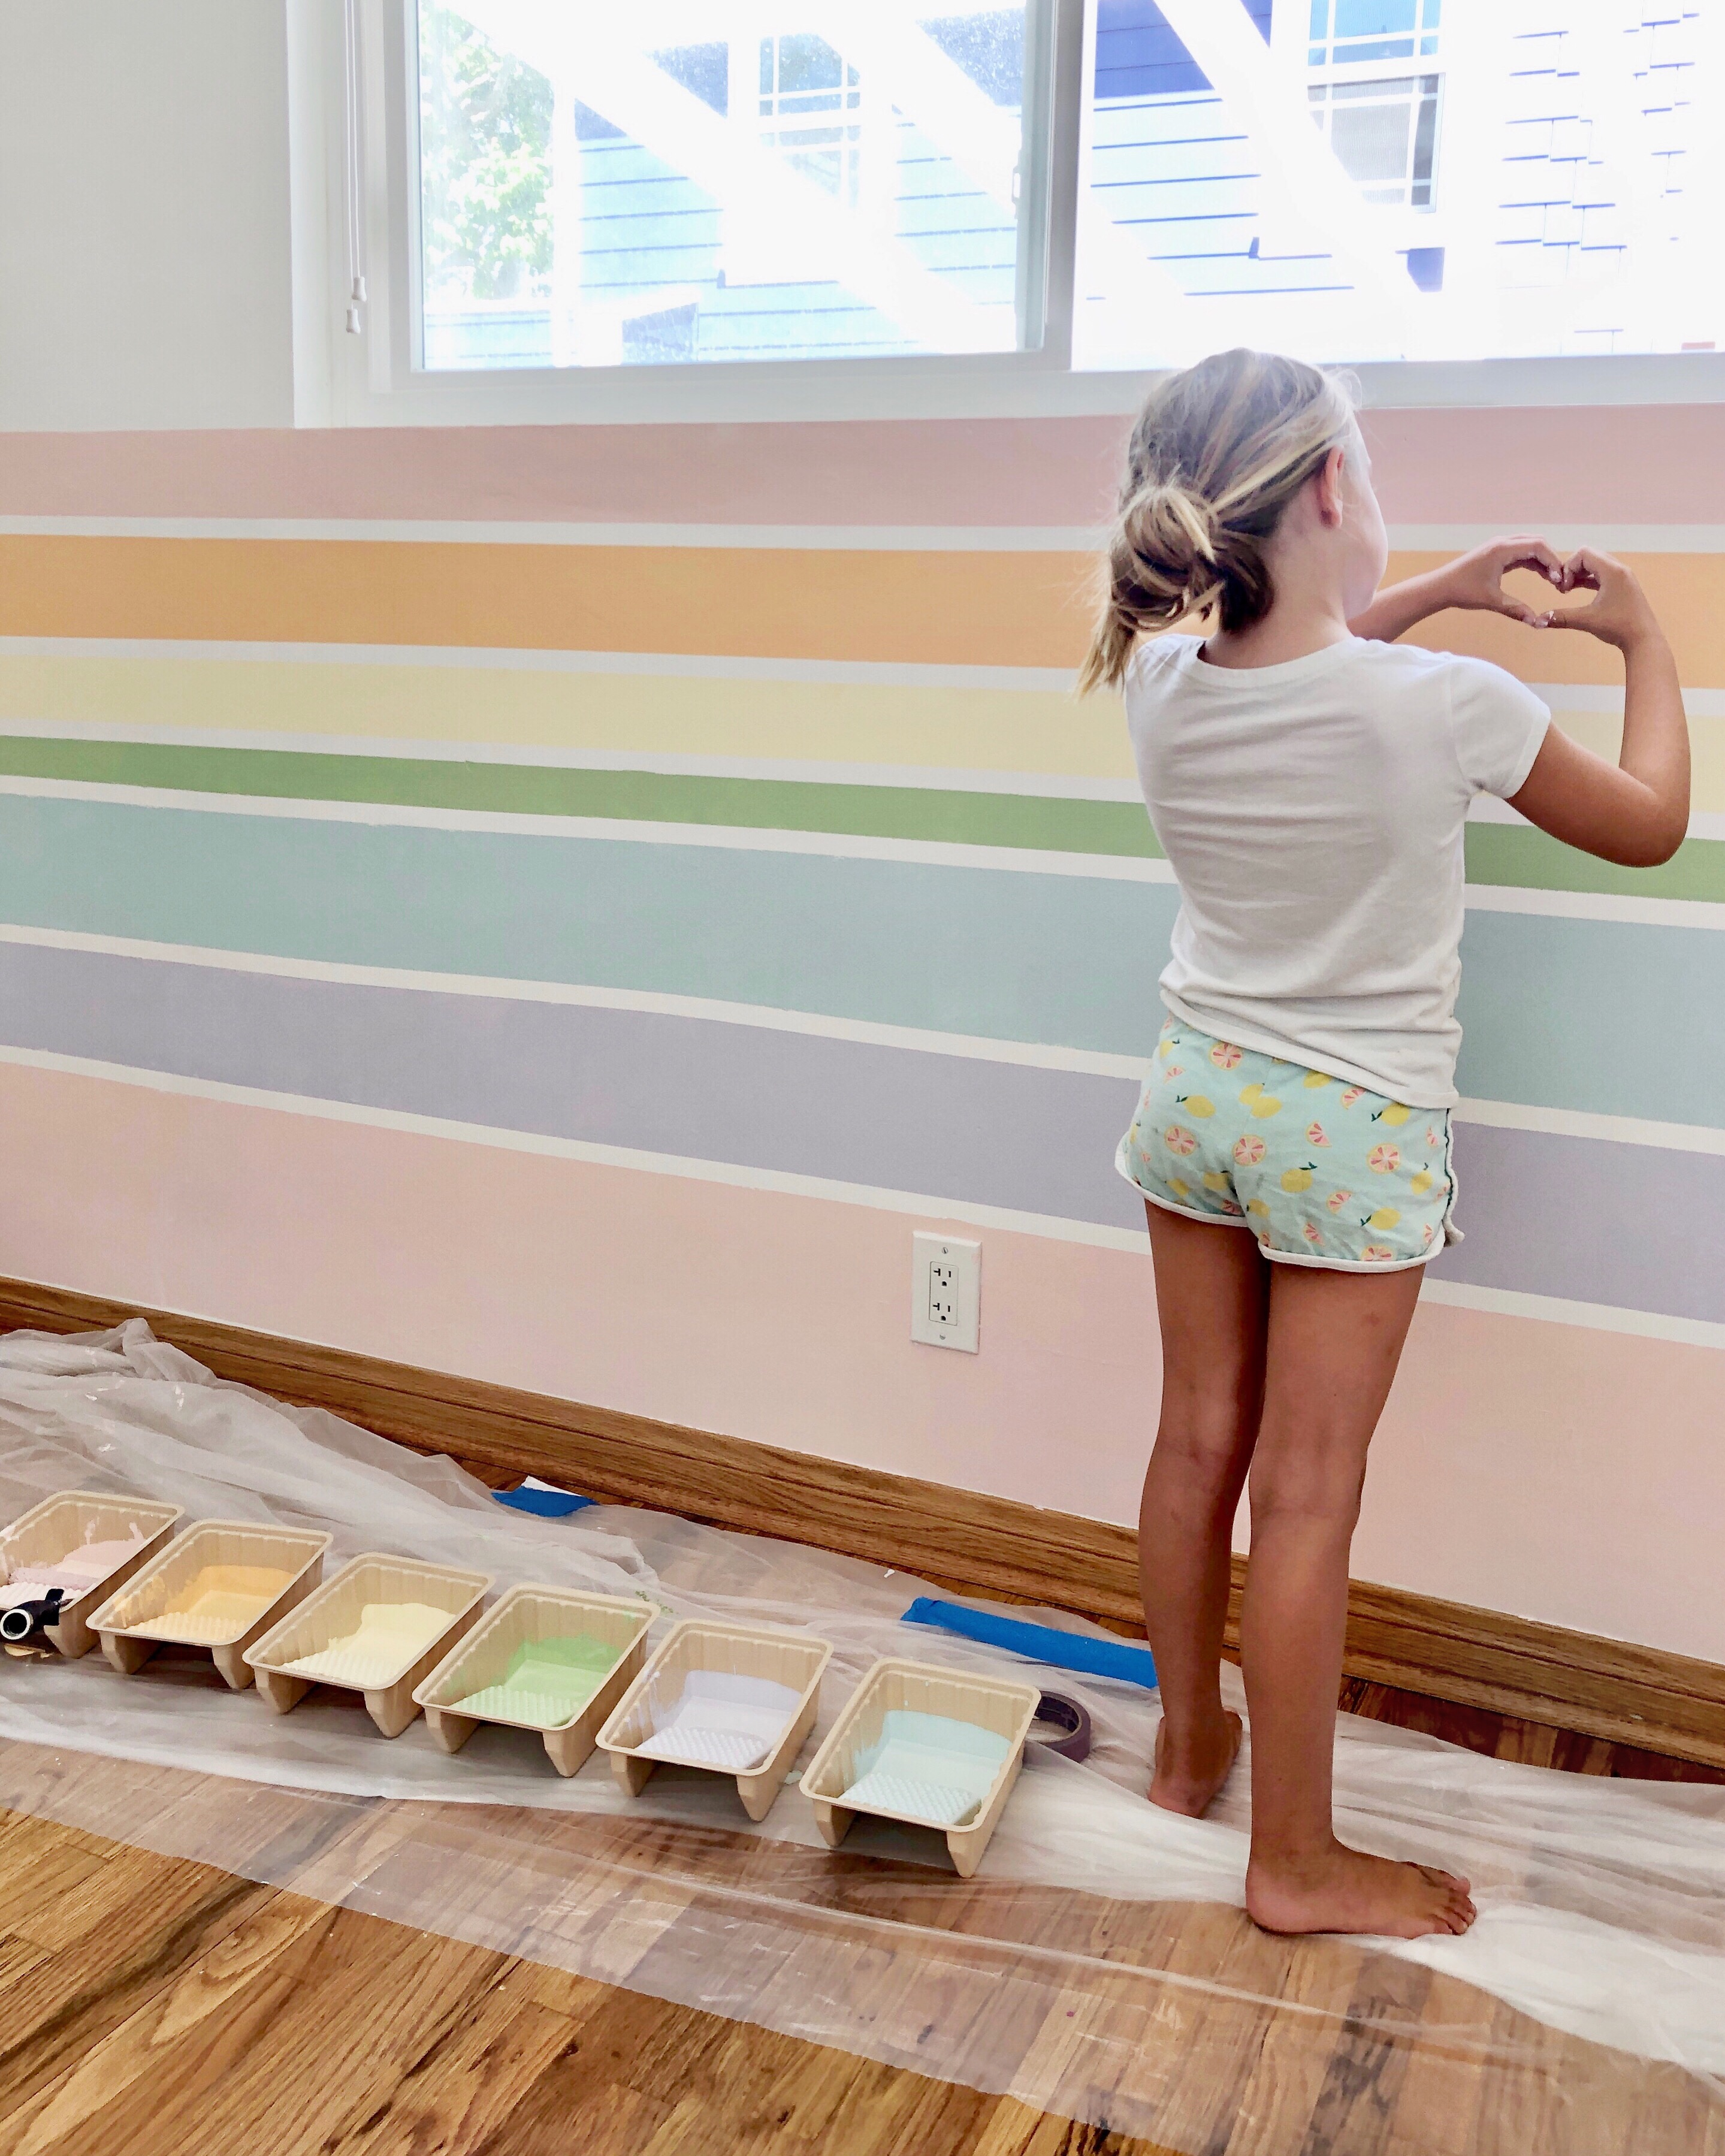 How to Paint a Rainbow Wall (and Fence!)